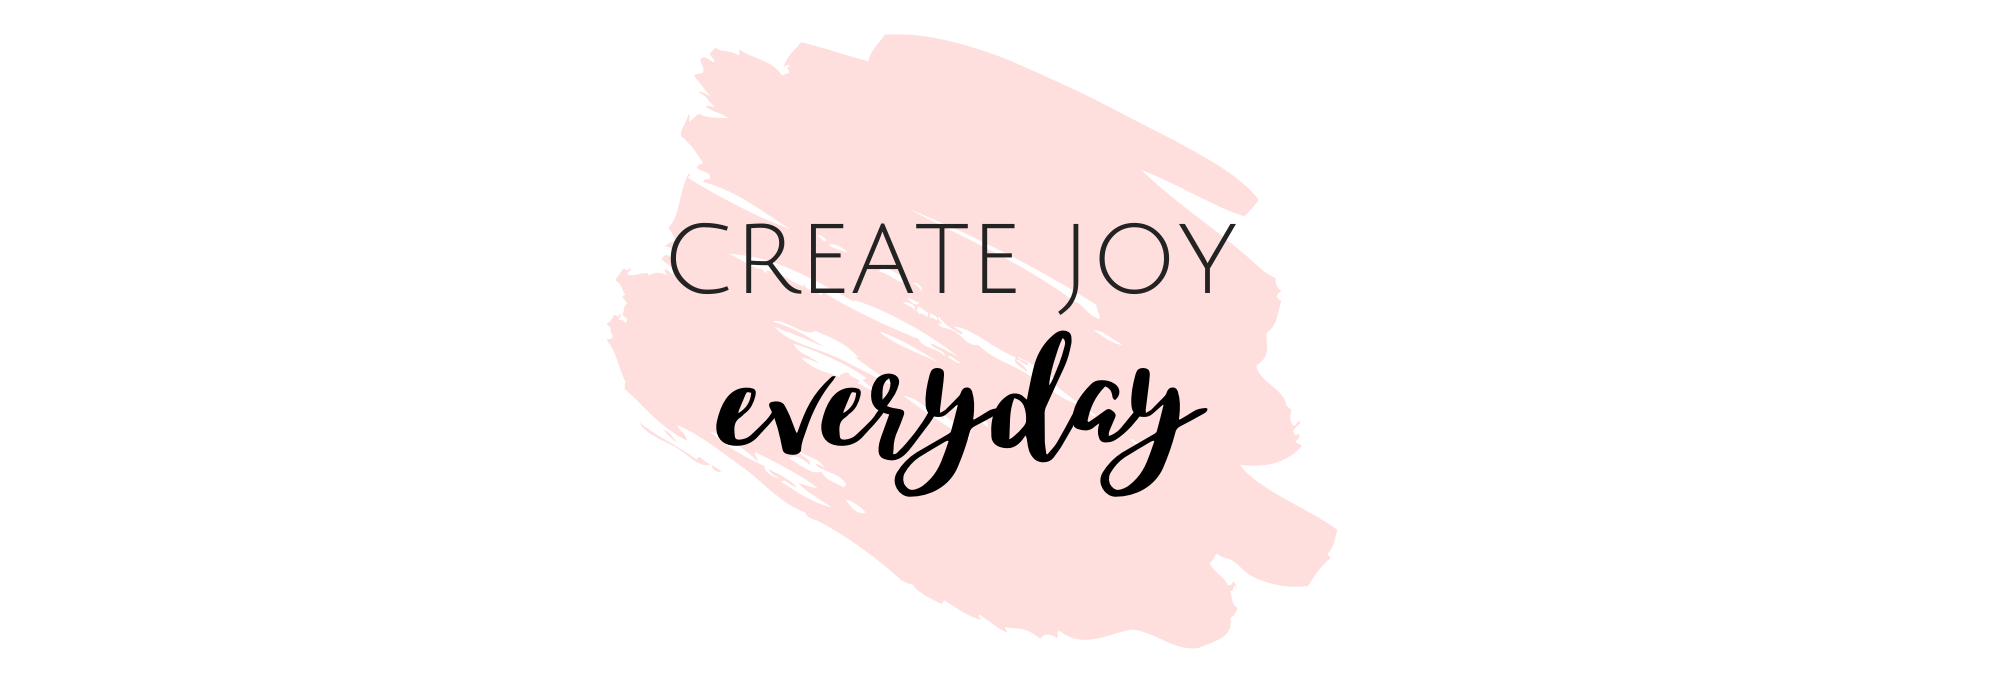 Create Joy Everyday